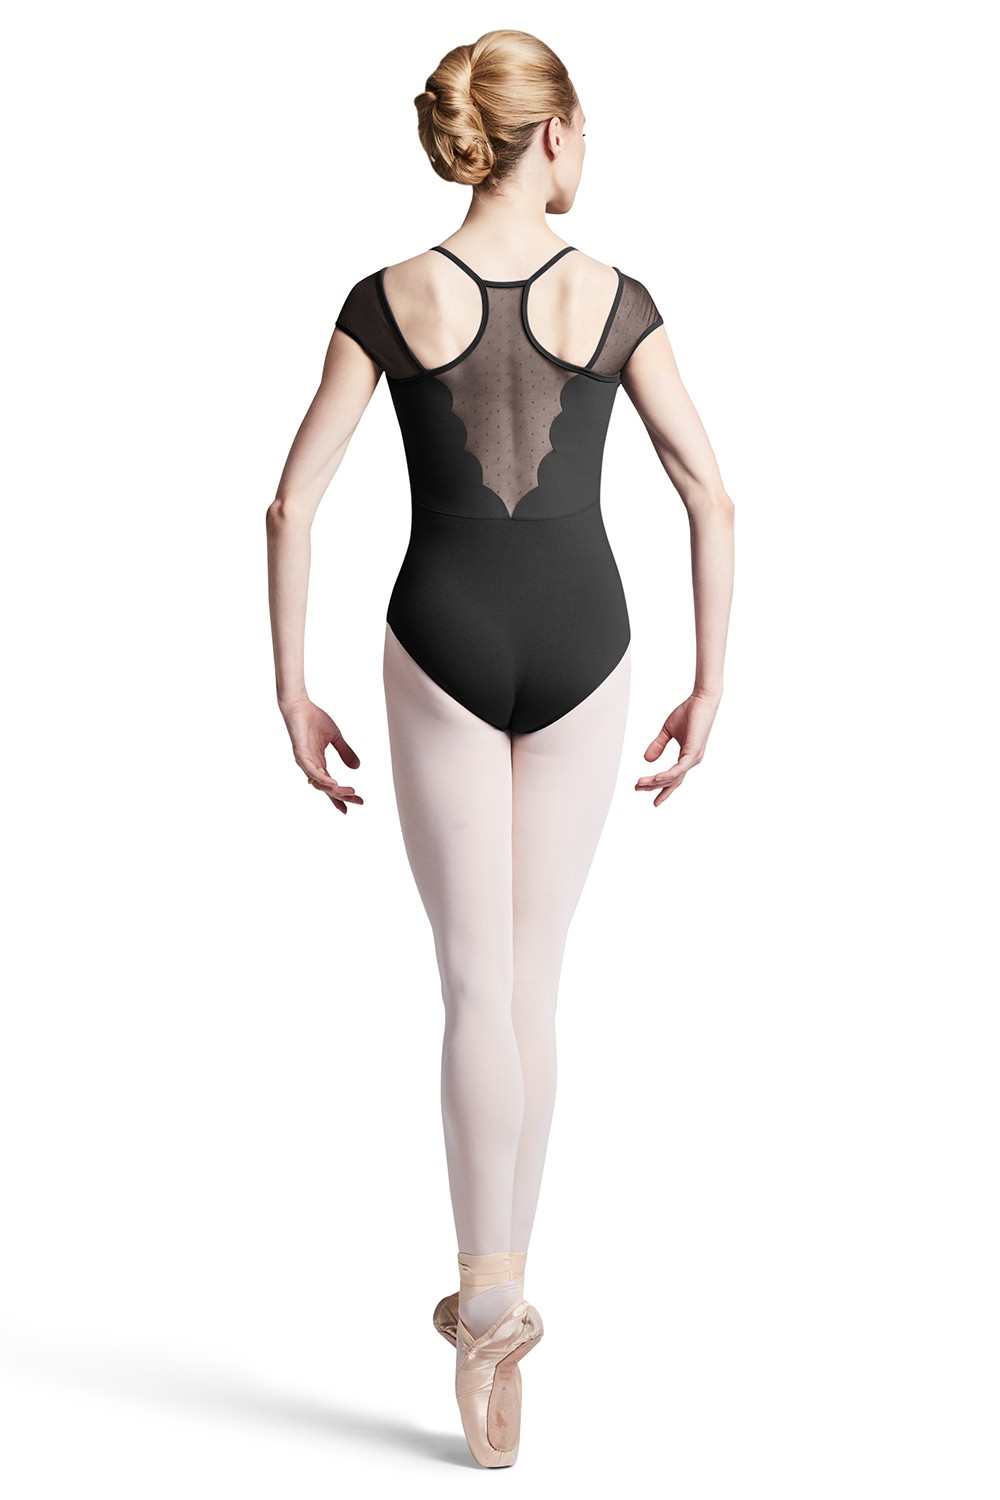 Fedlem Women's Dance Leotards